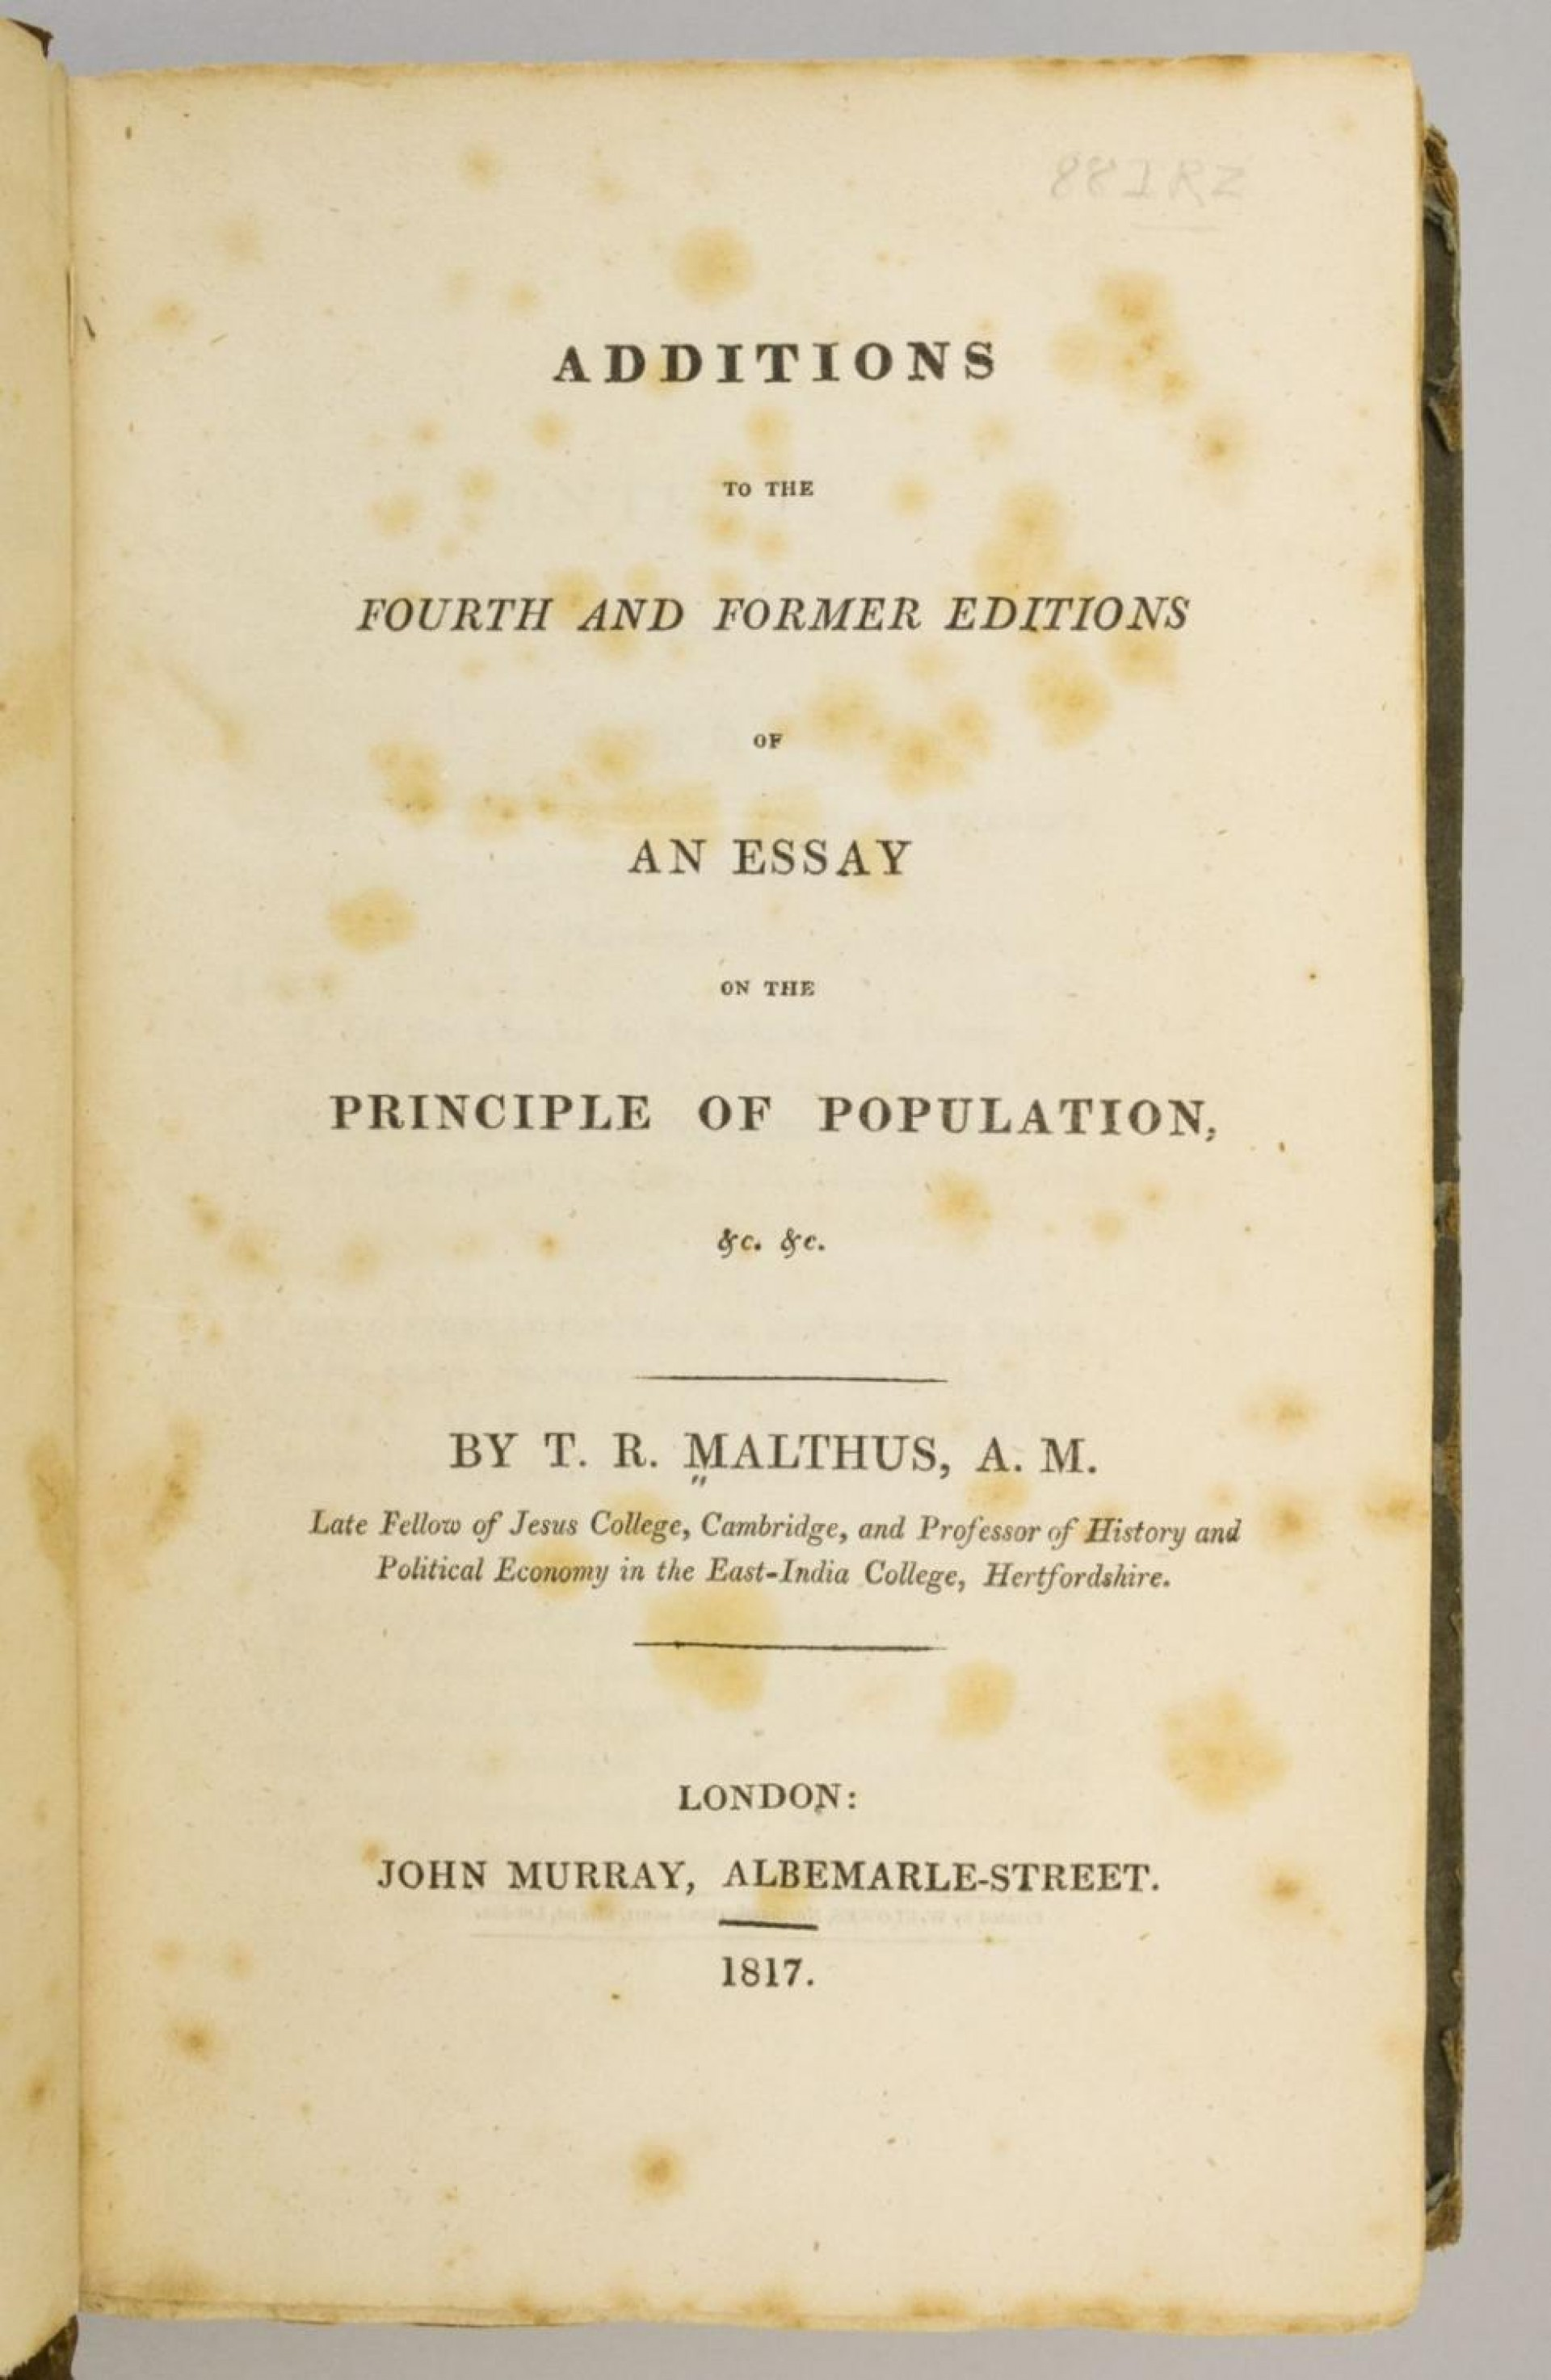 002 5337830061 2 An Essay On The Principle Of Population Fascinating By Thomas Malthus Pdf In Concluded Which Following 1920